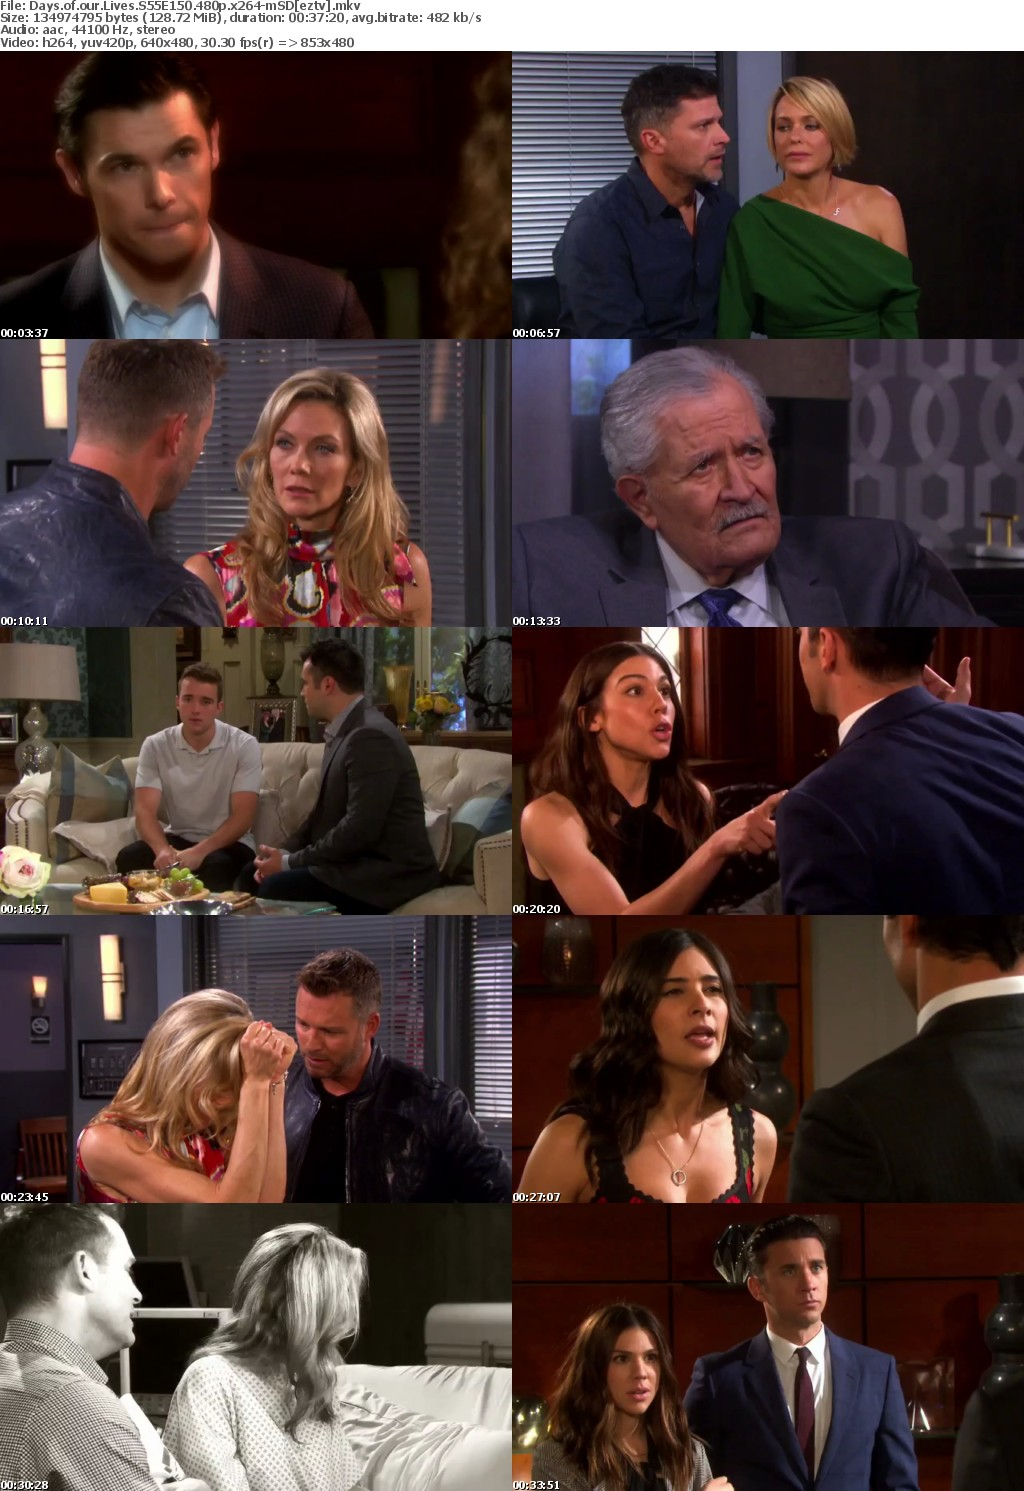 Days of our Lives S55E150 480p x264-mSD